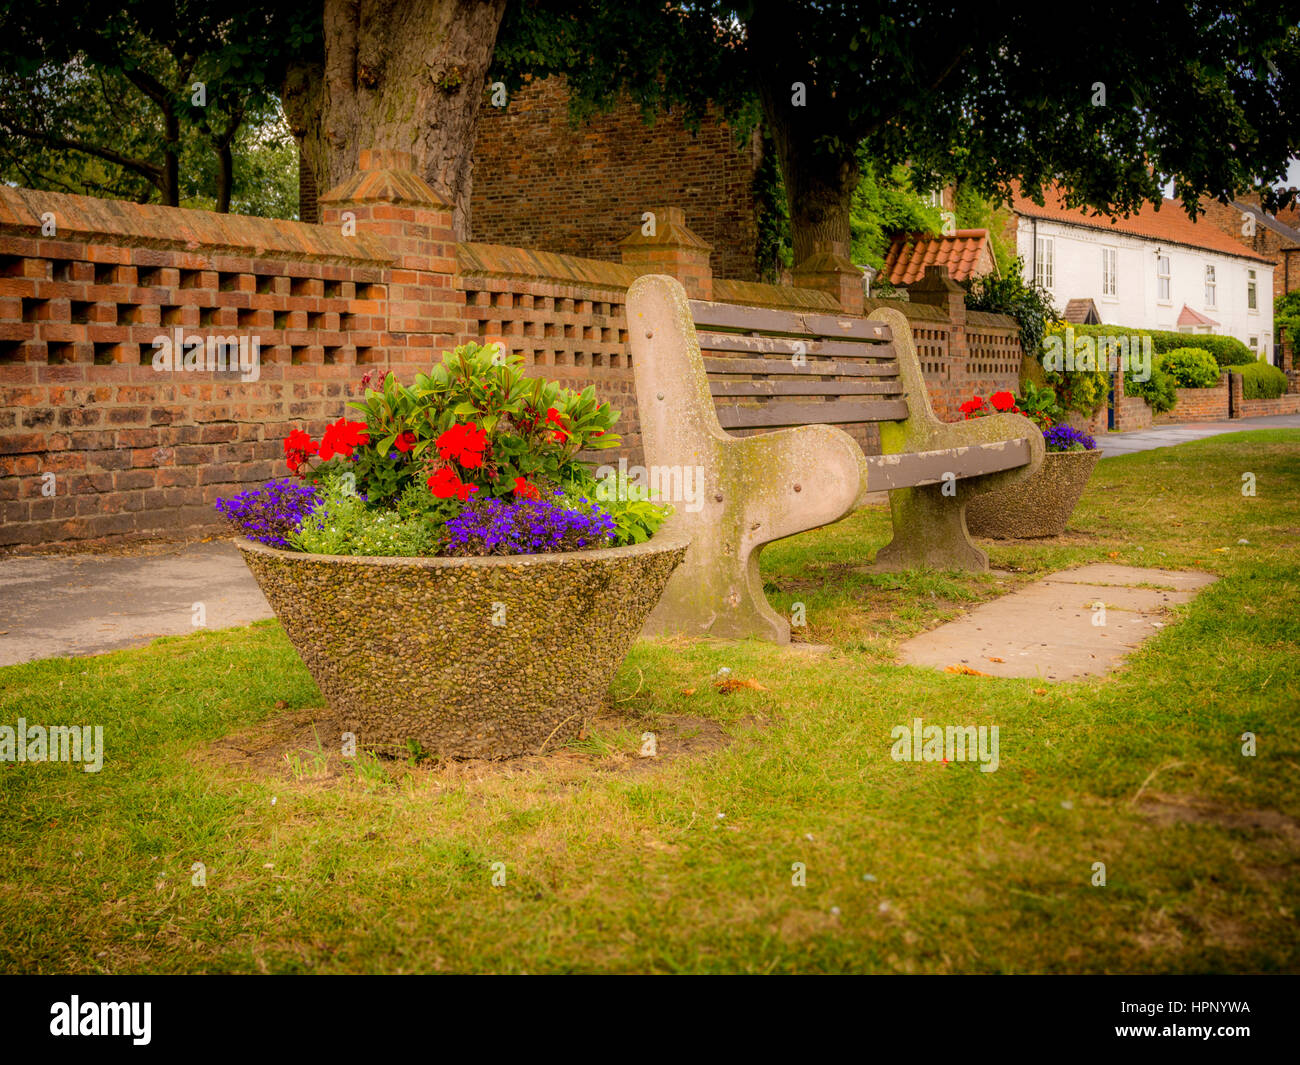 Pre-cast concrete flowerpot with flowering plants and concrete / wood bench seat outdoors, Haxby, Yorkshire, UK. - Stock Image